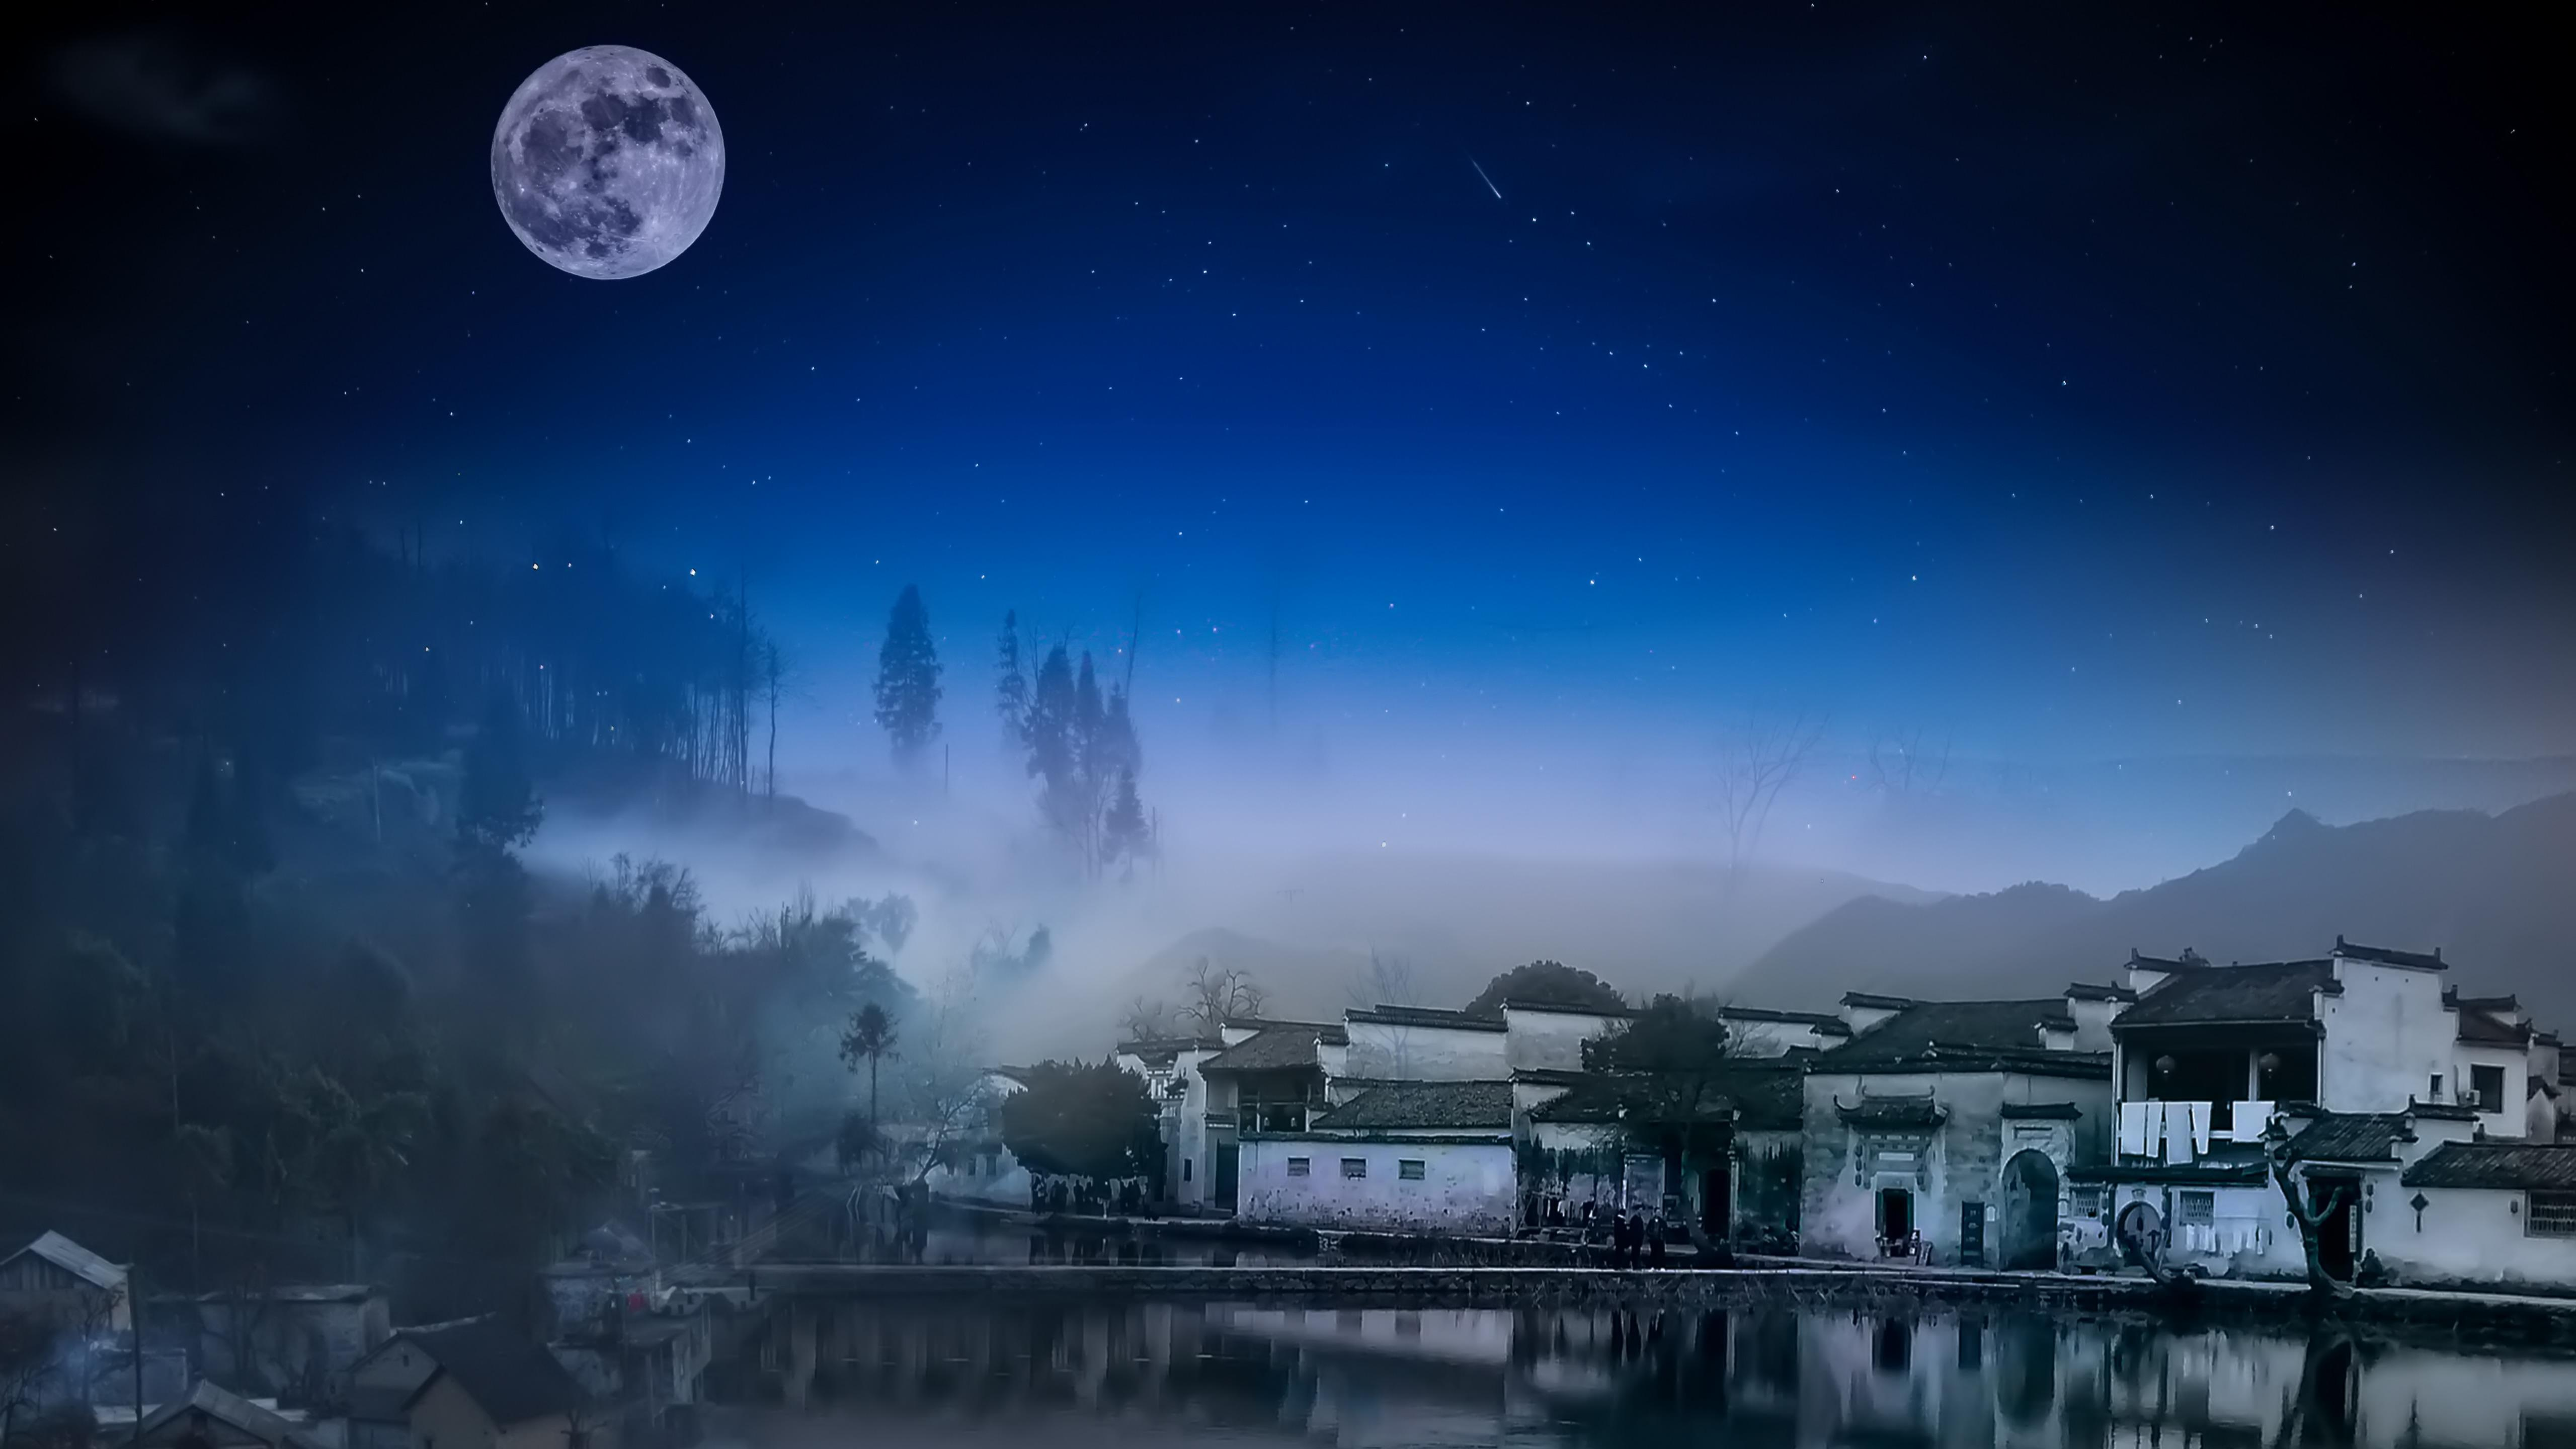 Full moon over Yi County wallpaper